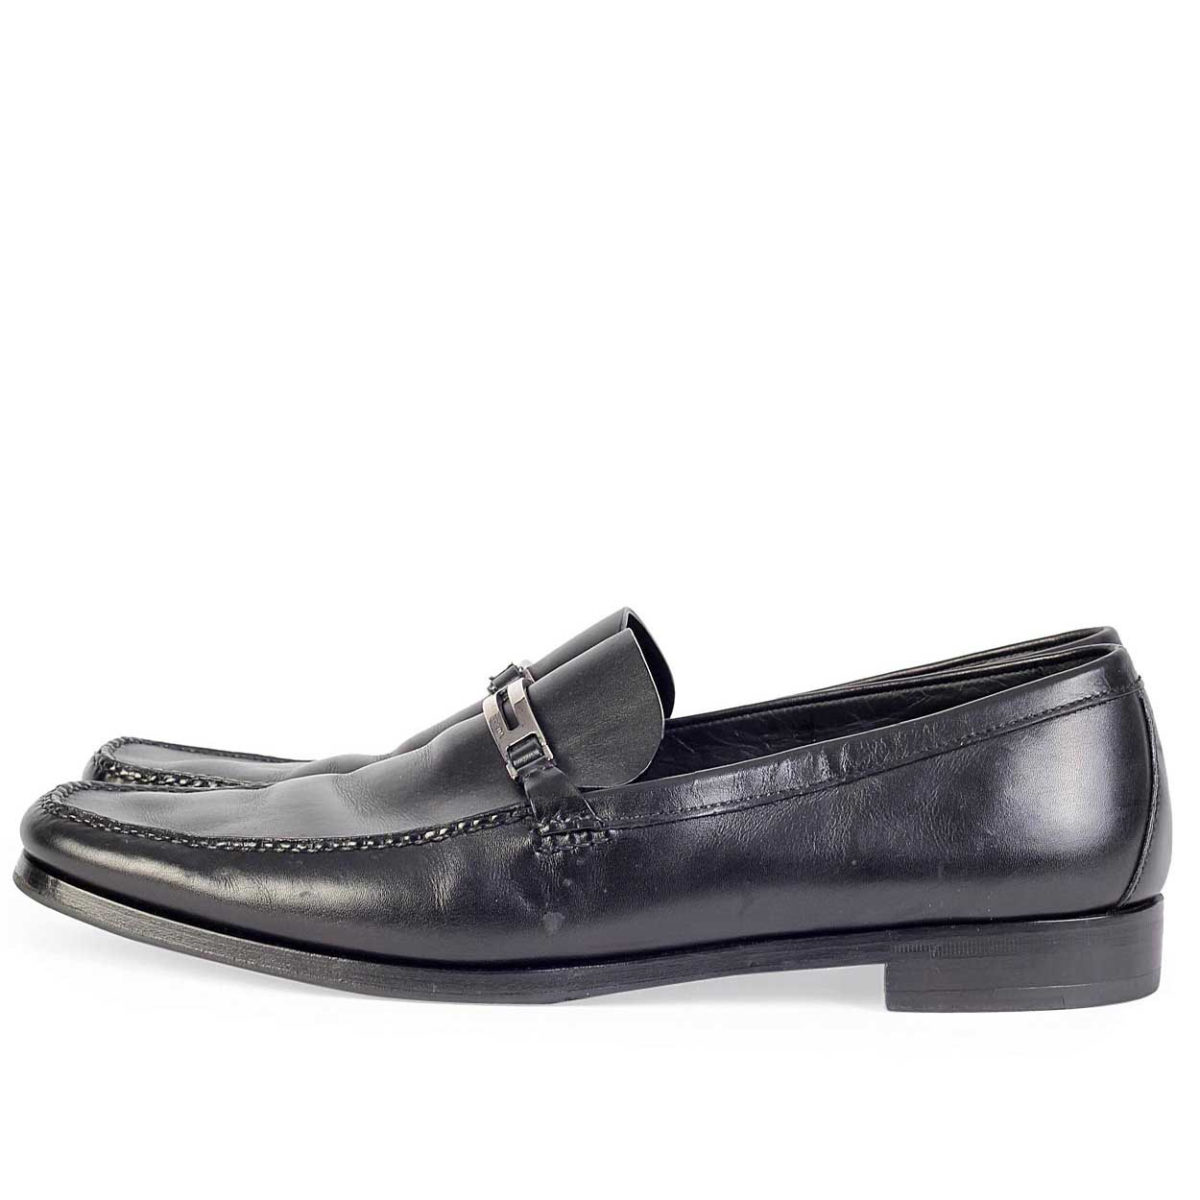 7e76569bcb6a PRADA Black Leather Mens Loafers with Logo Plate - S  46 (11)